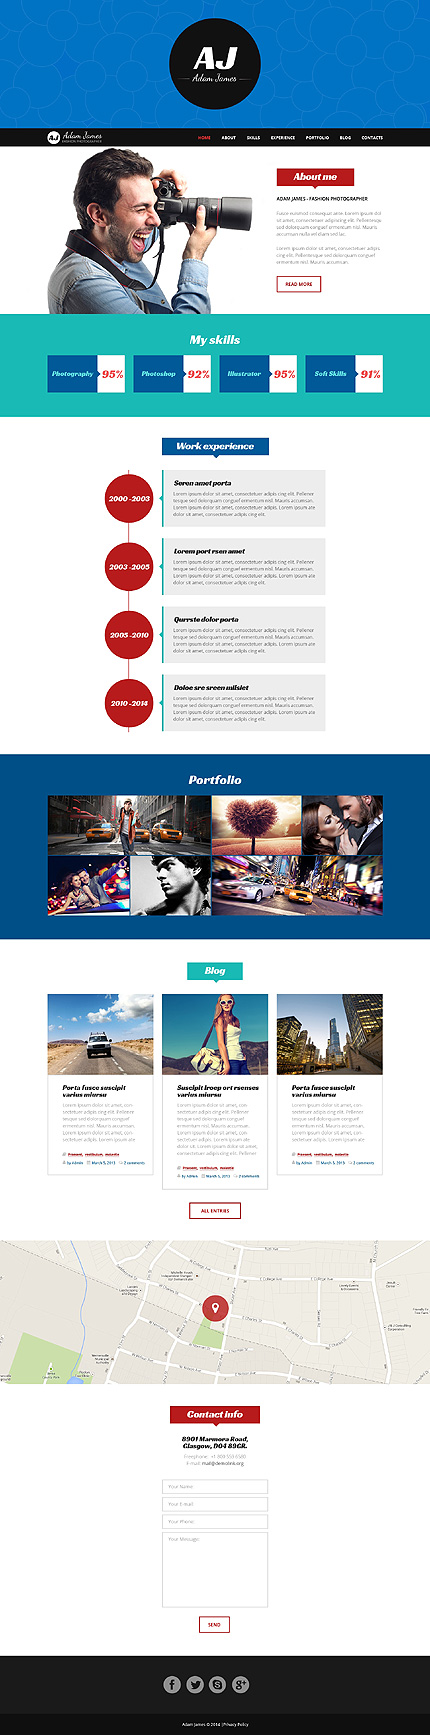 Page of Fashion Photographer WordPress Theme